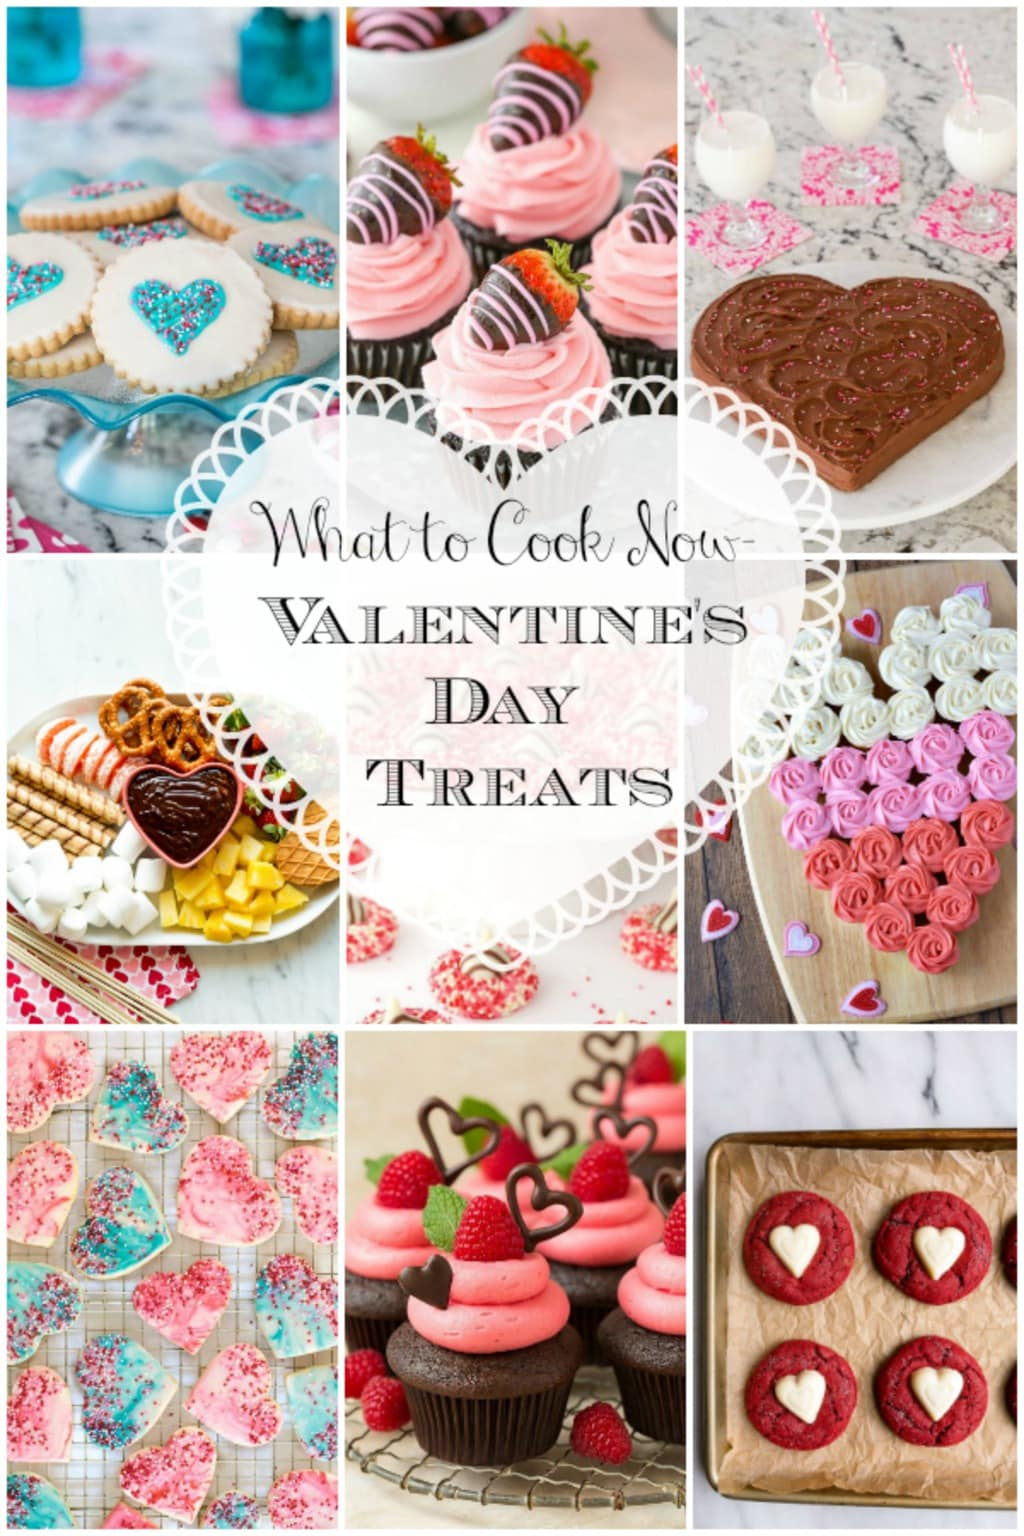 Photo collage of What to Cook Now- Valentine's Day Treats with a lace heart graphic in the center of the collage.